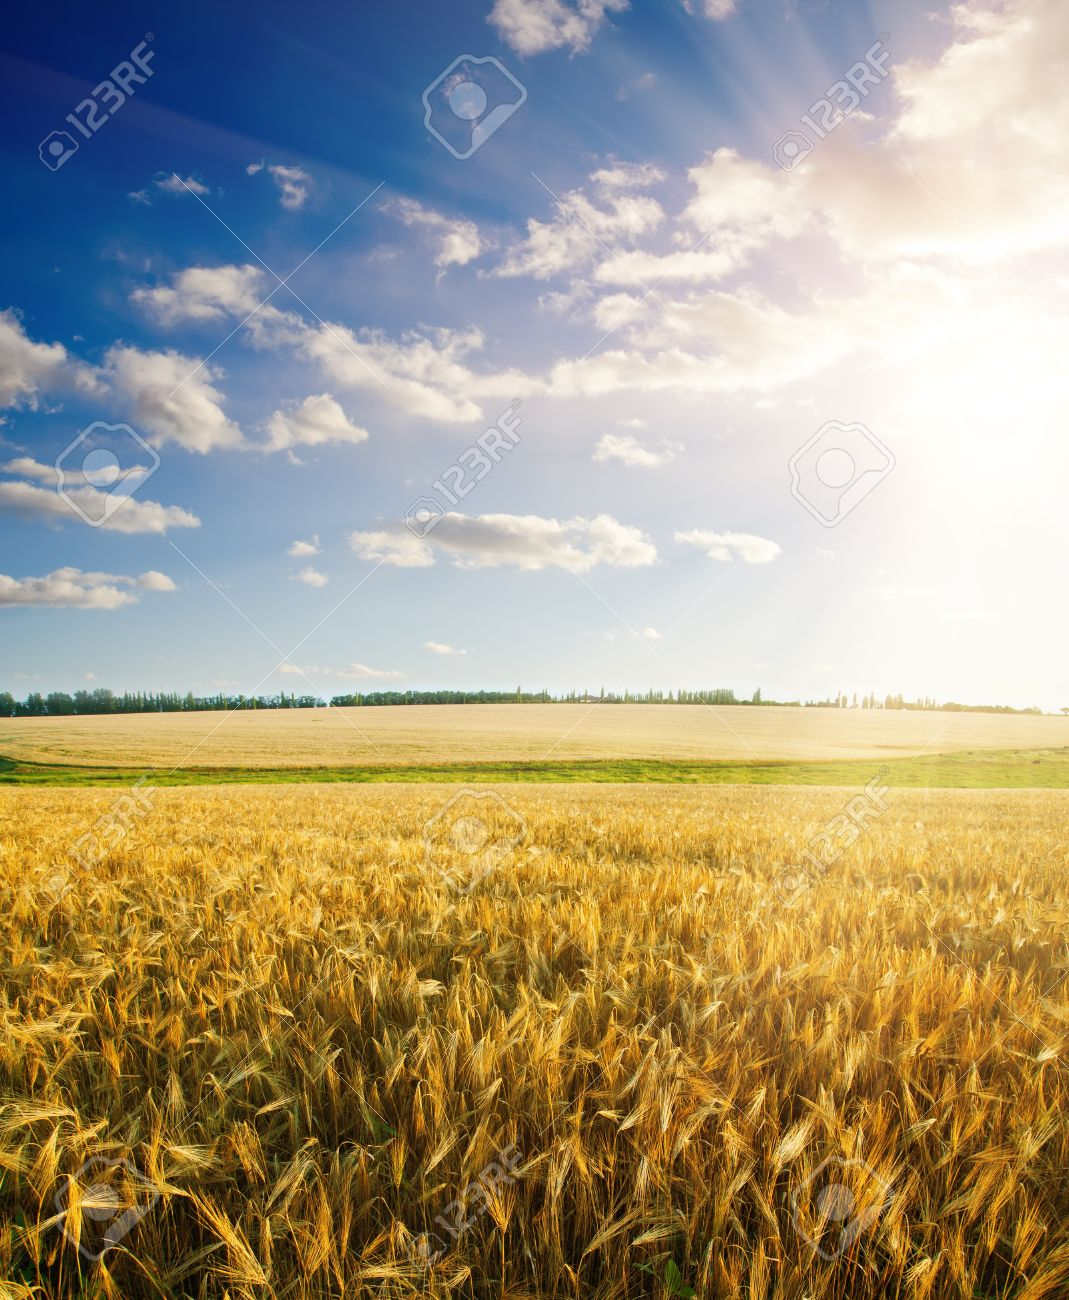 field of wheat under cloudy sky with sun Stock Photo - 9185564